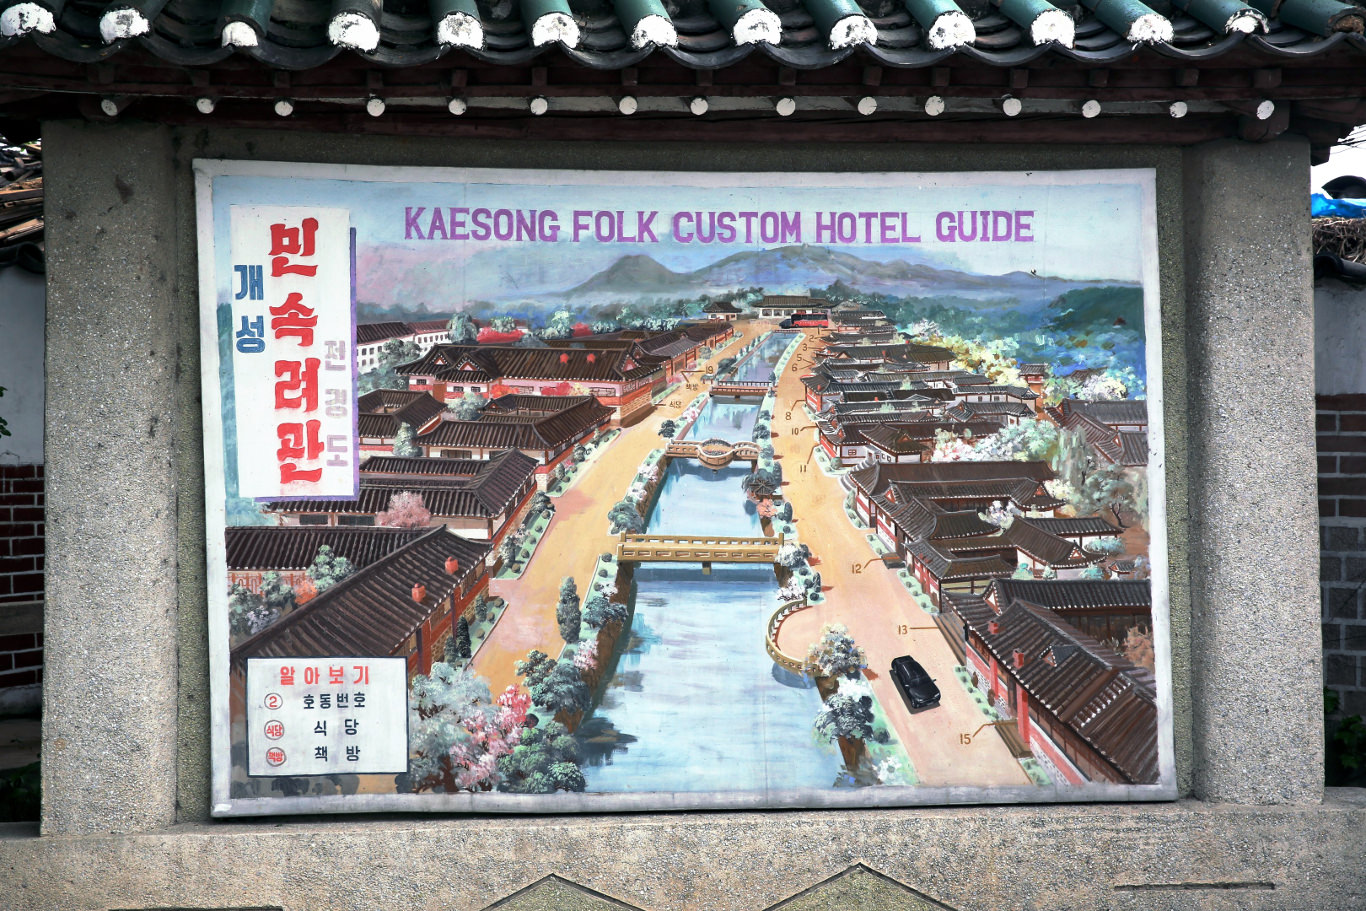 Map of the Folk custom hotel in Kaesong city, North Hwanghae Province, North Korea (DPRK). It is also referred to as the Kaesong Minsok Hotel. Tour arranged by KTG Tours